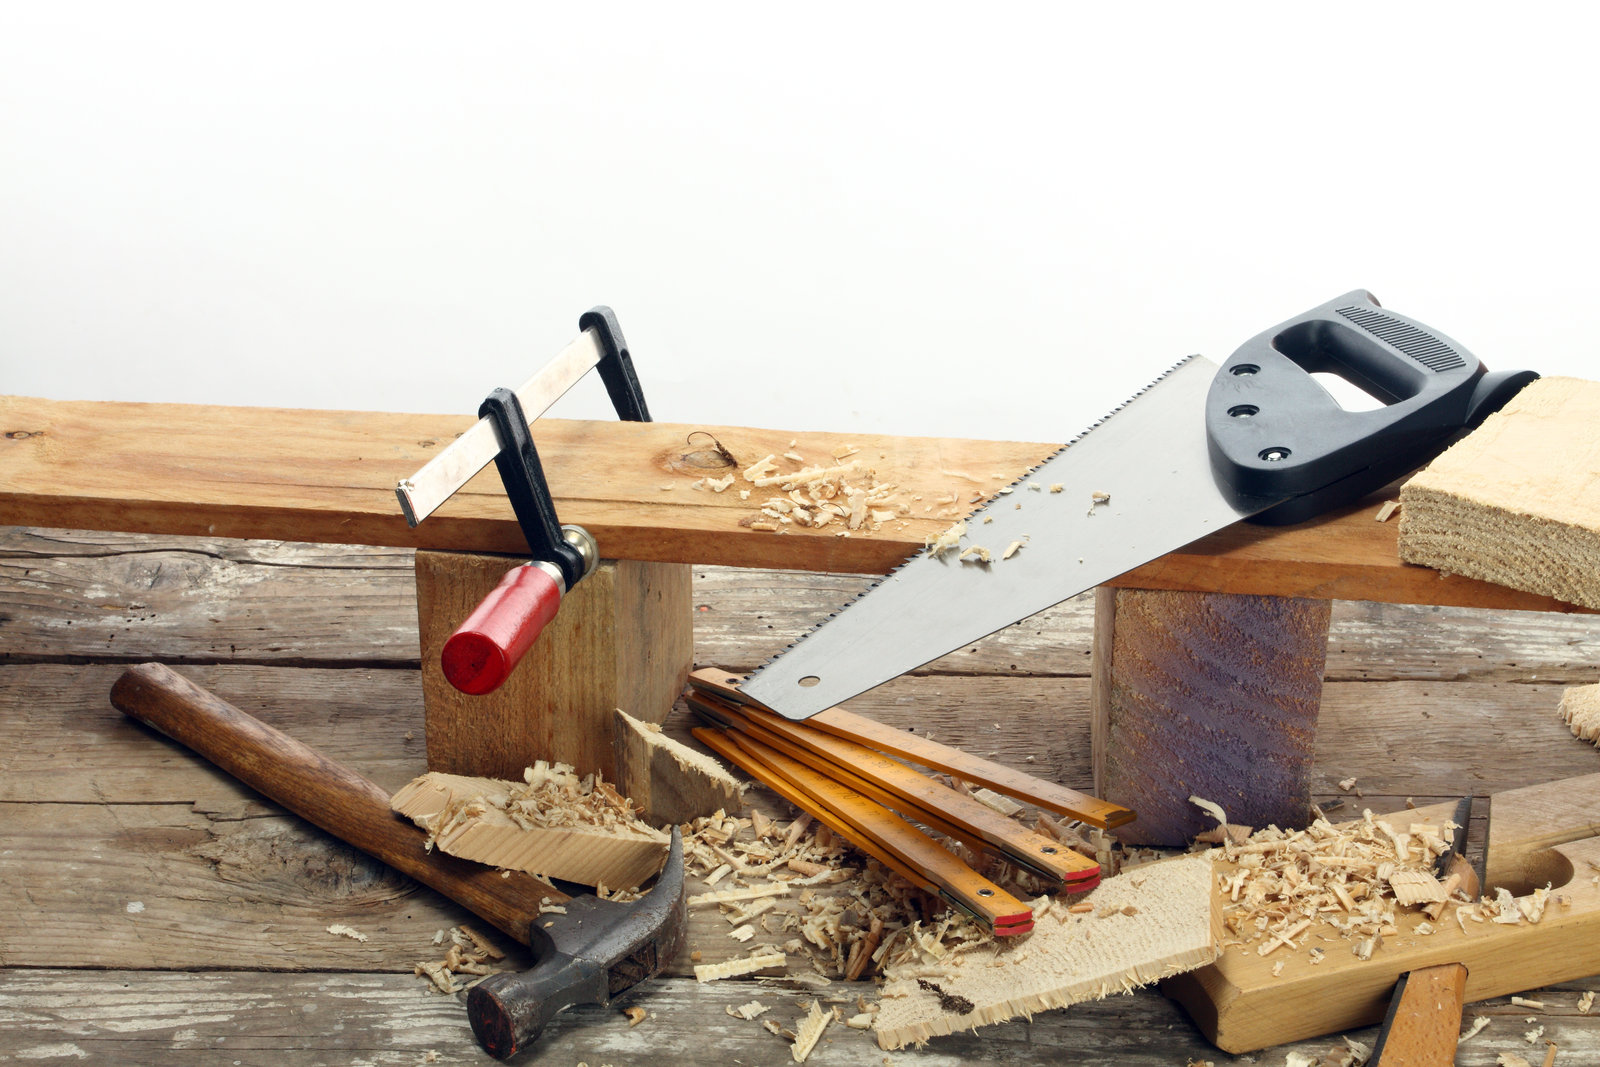 Why The Right Tools & Equipment Are Crucial For DIY Projects